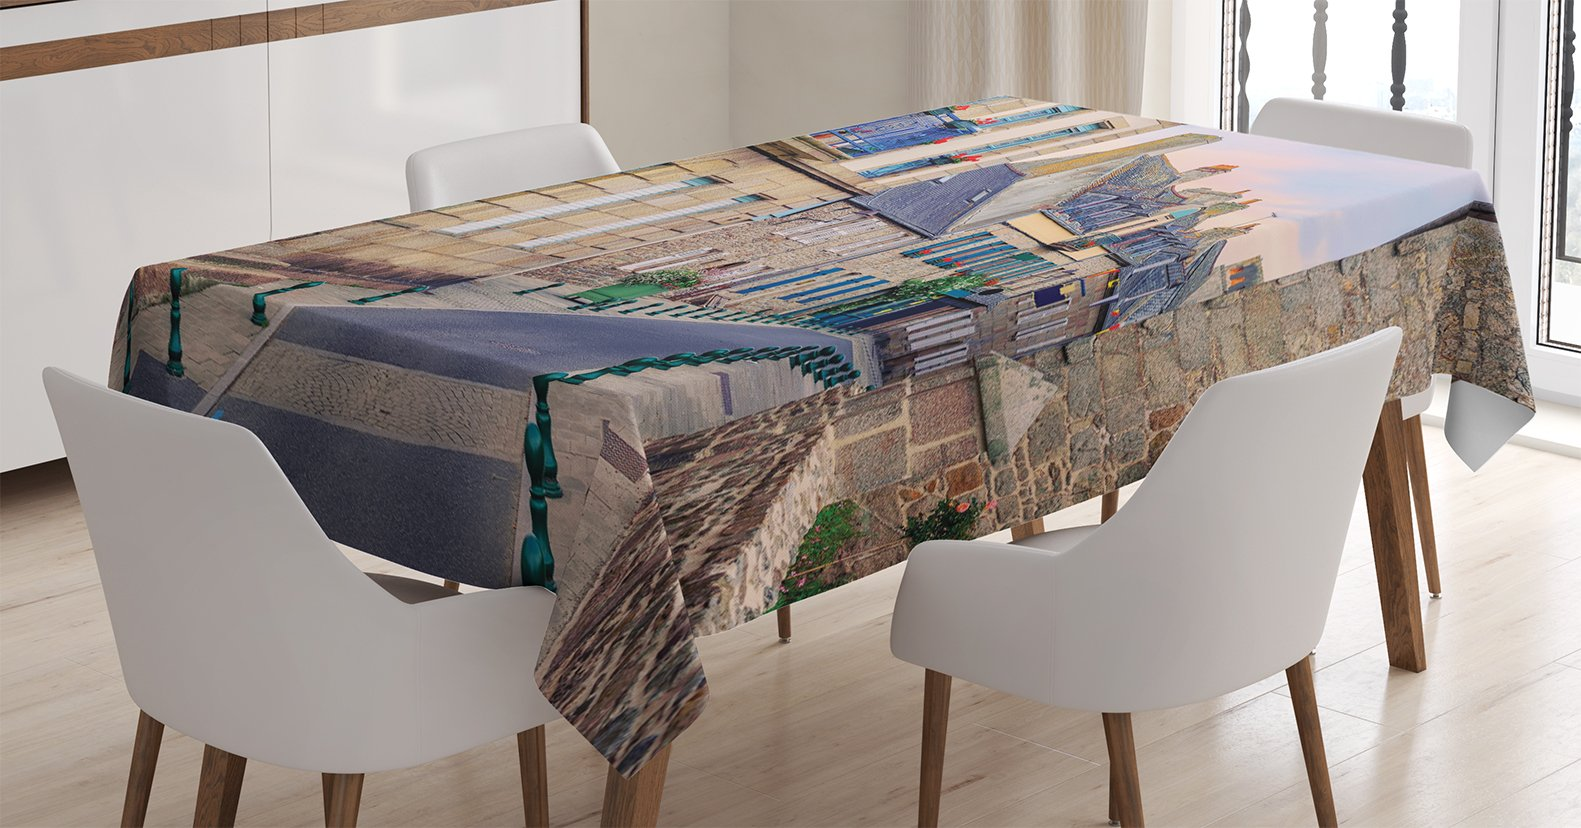 Ambesonne Wanderlust Decor Tablecloth, Traditional French Stone Houses Windows Decorated with Flowers in Roscoff, Dining Room Kitchen Rectangular Table Cover, 60 X 90 inches, Blue Red Beige